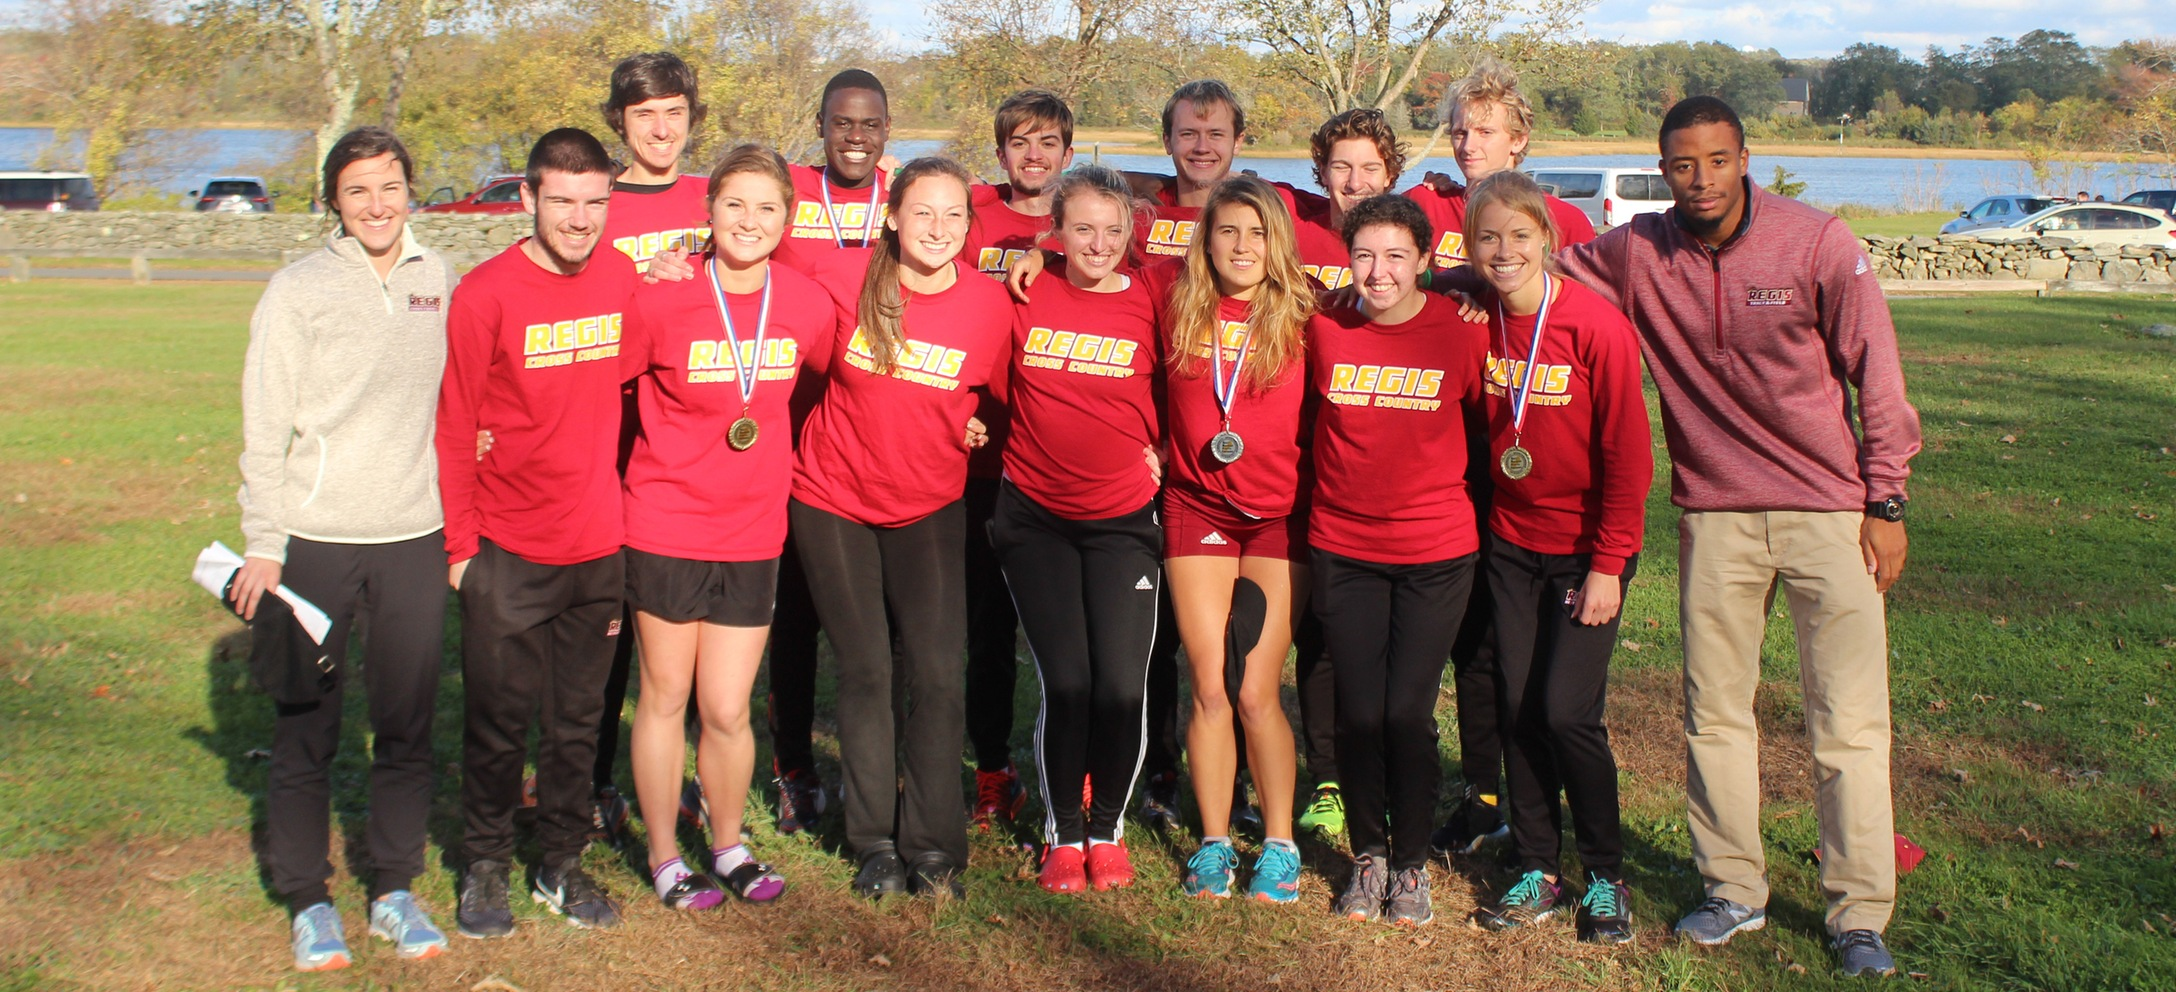 Men's and Women's Cross Country Both Finish in Top 4 at GNAC Championships